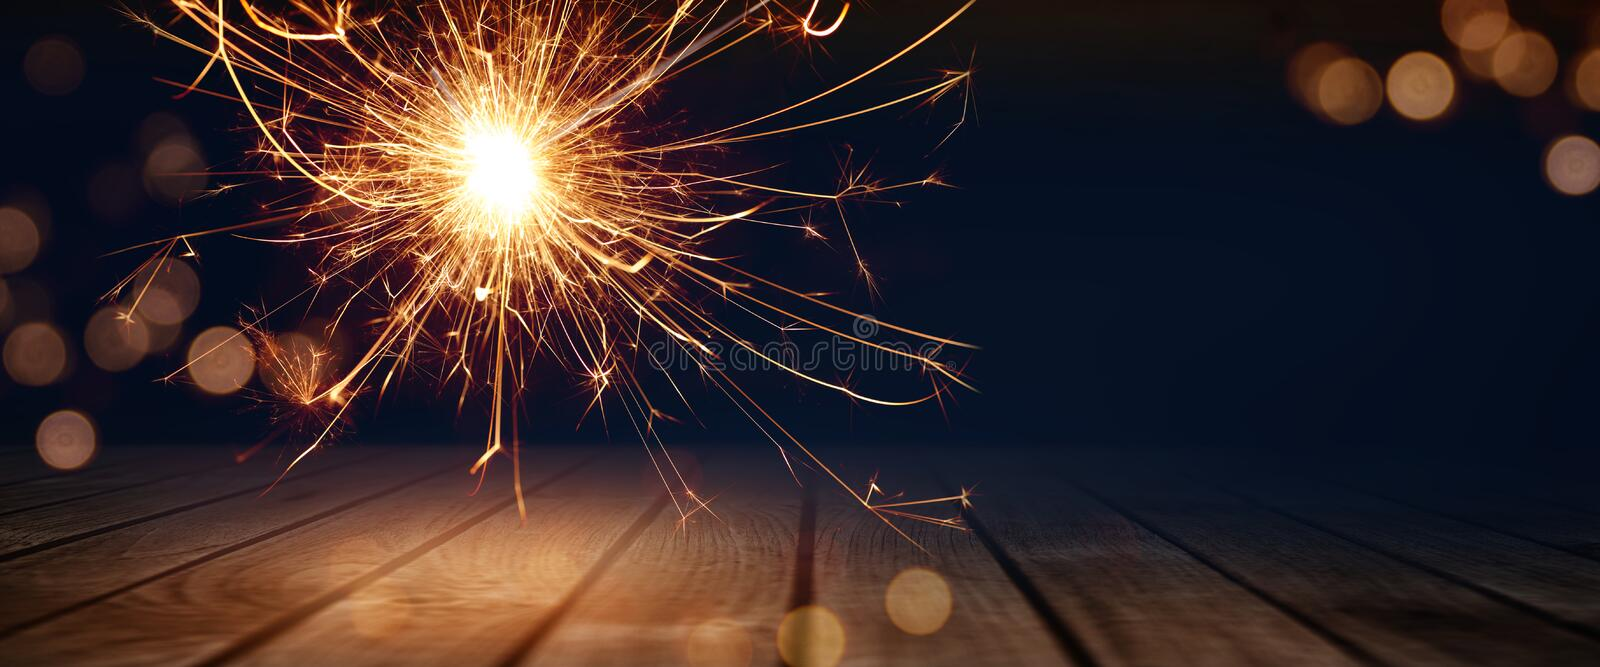 Magic spark on a stage with bokeh royalty free stock image